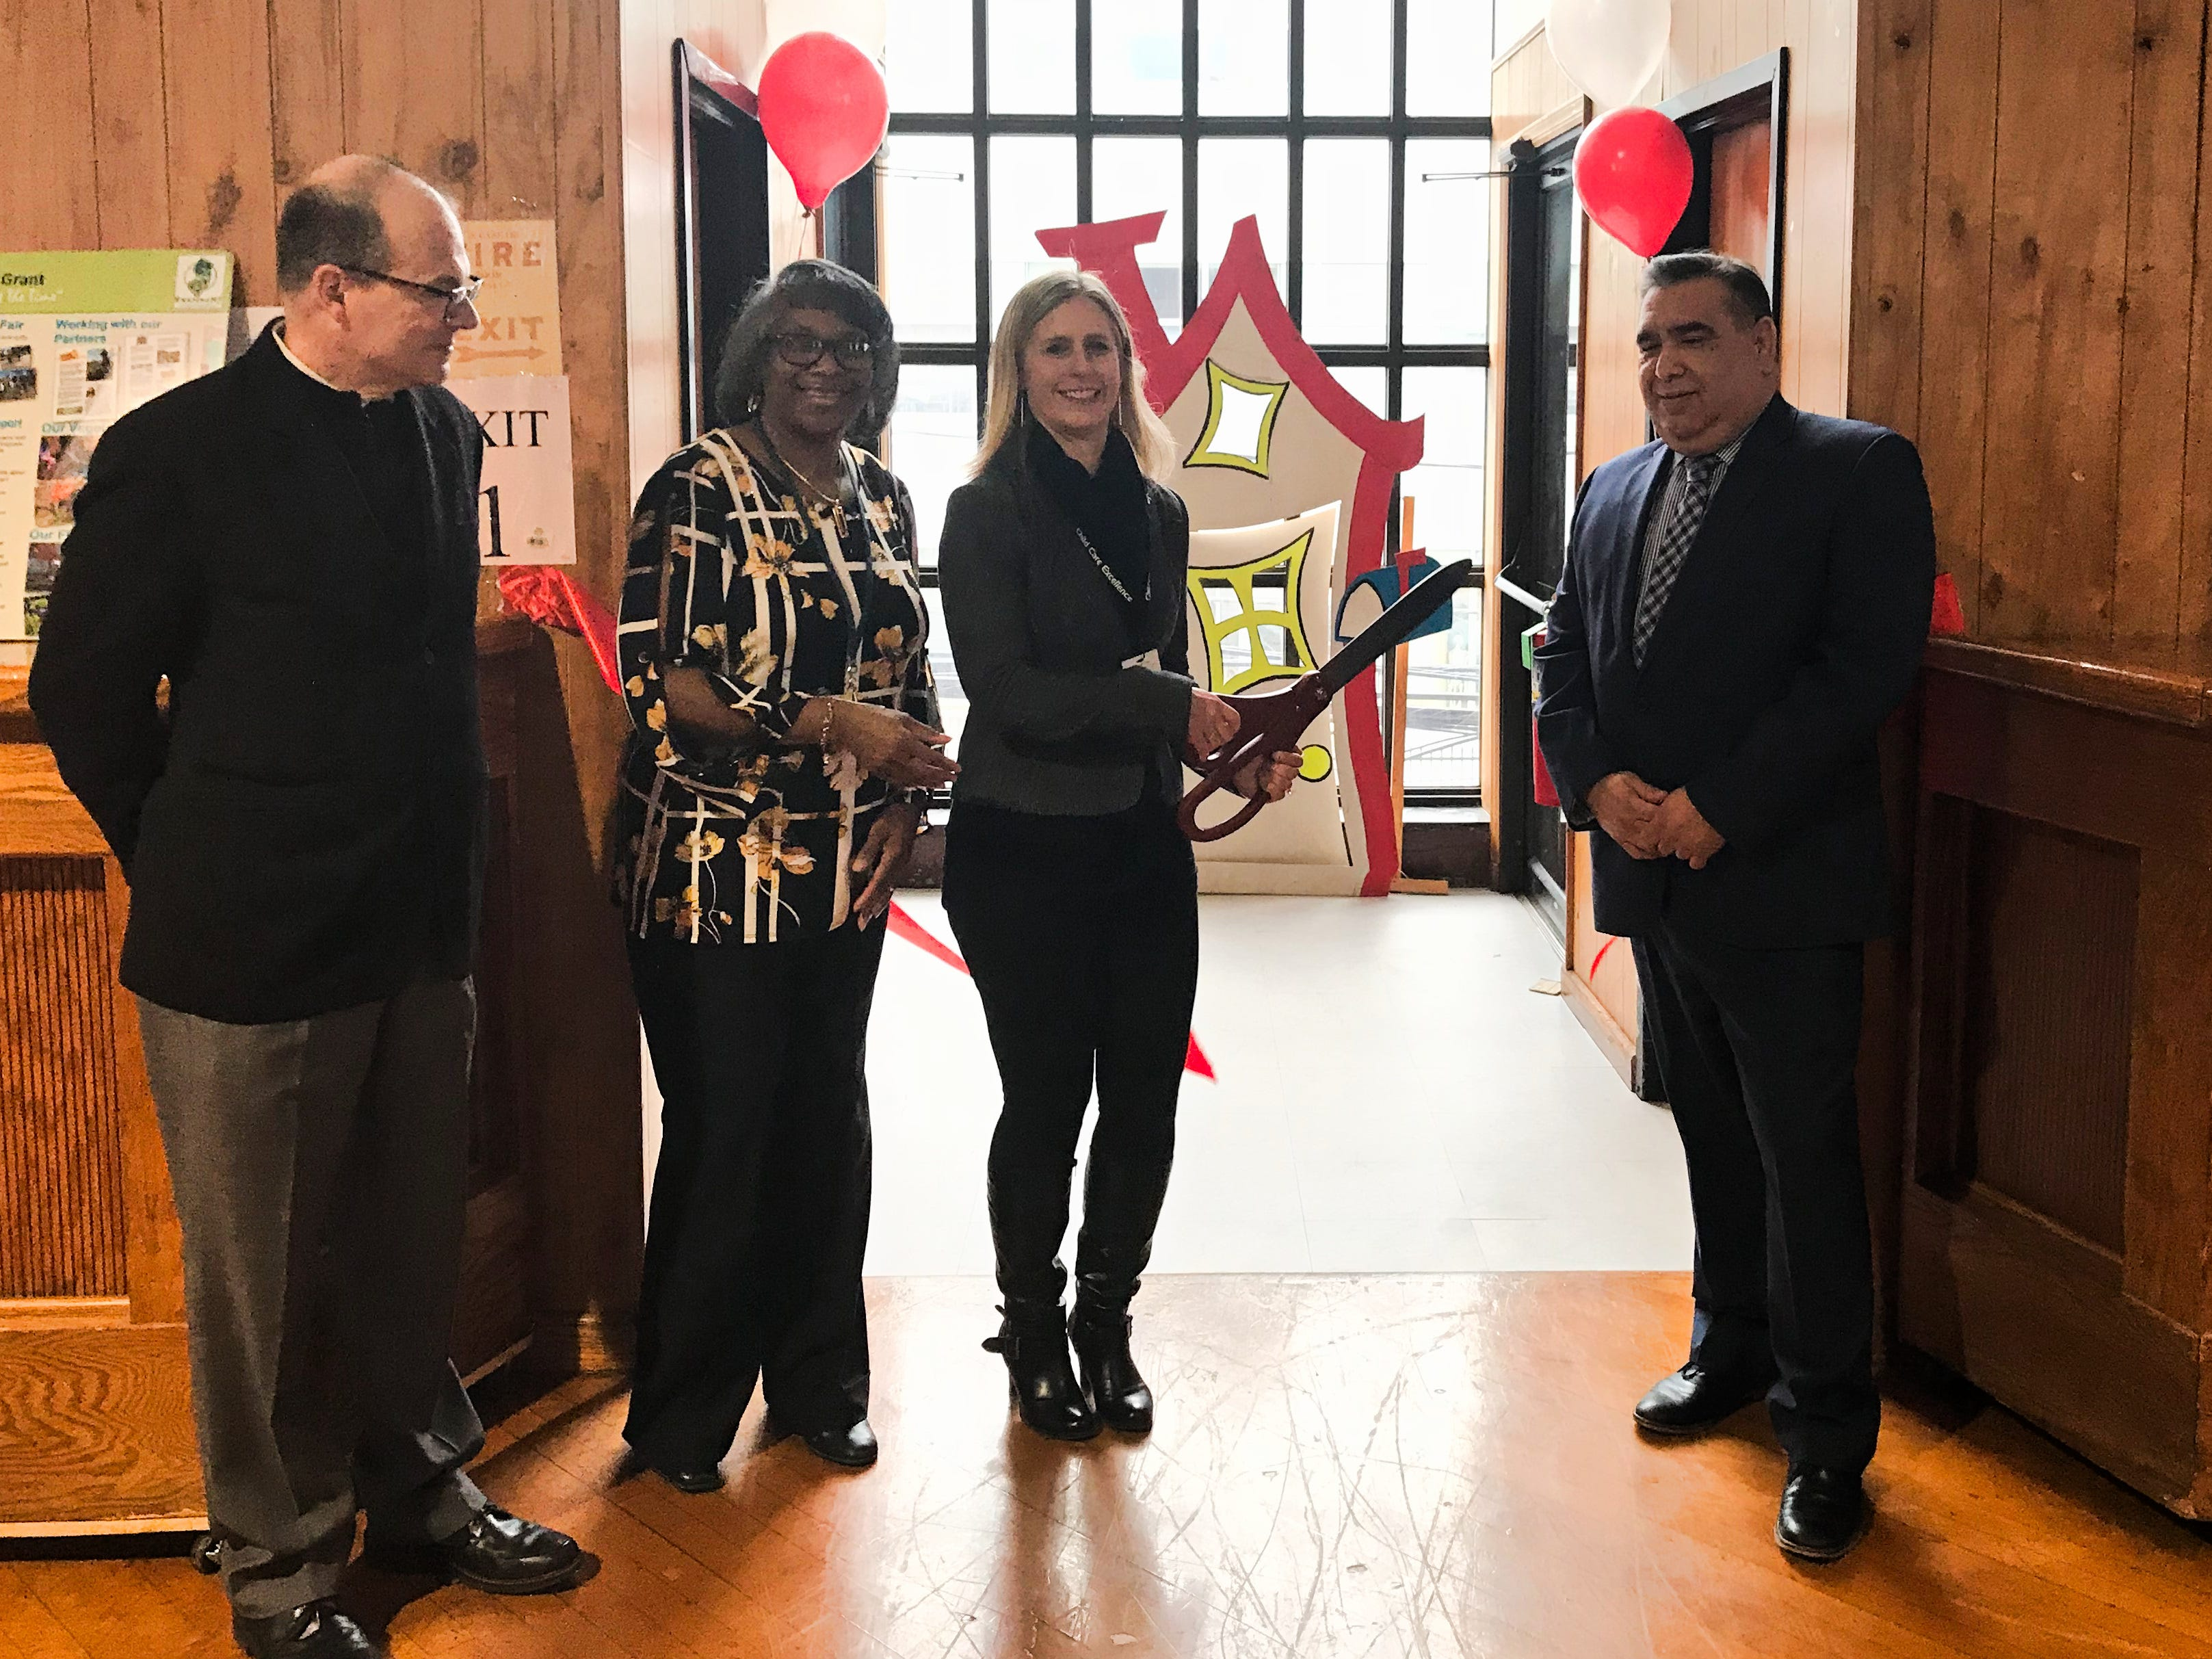 Left to Right, Reverend Monsignor Joseph Kerrigan joins Catholic Charities Child Care Center Director Cheryl Curry, Service Area Director Krista Glynn, and Acting Associate Director Julio Coto in a ceremonial Ribbon Cutting at the Youth Enrichment Services (YES)  Center at St Ladislaus, which opened its doors to students just in time for the 2018-2019 School Year. The Preschool Center at 197 Somerset St. has 12 classrooms with a maximum capacity of 180 preschoolers and is operated by Catholic Charities, Diocese of Metuchen.